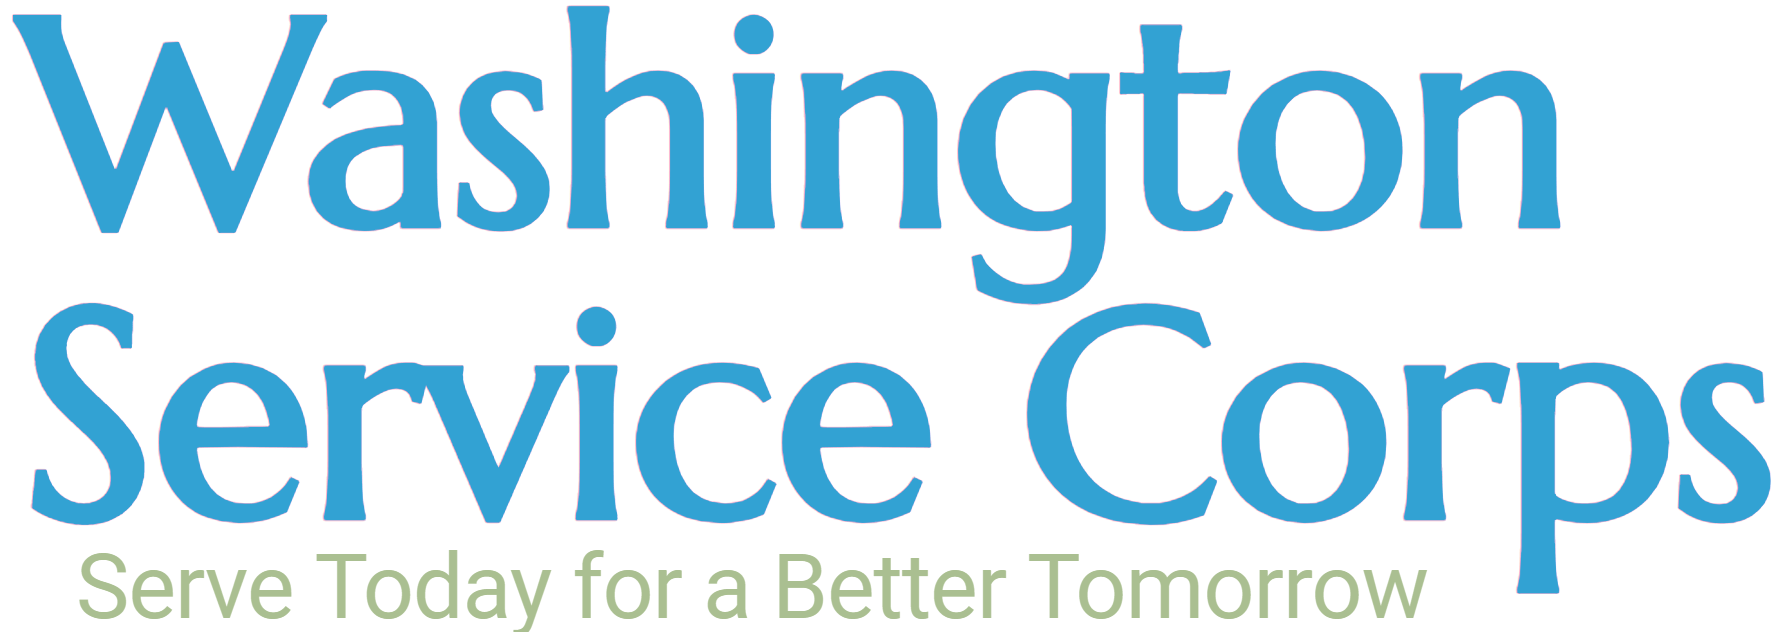 Washington Service Corps- Serve Today for a Better Tomorrow